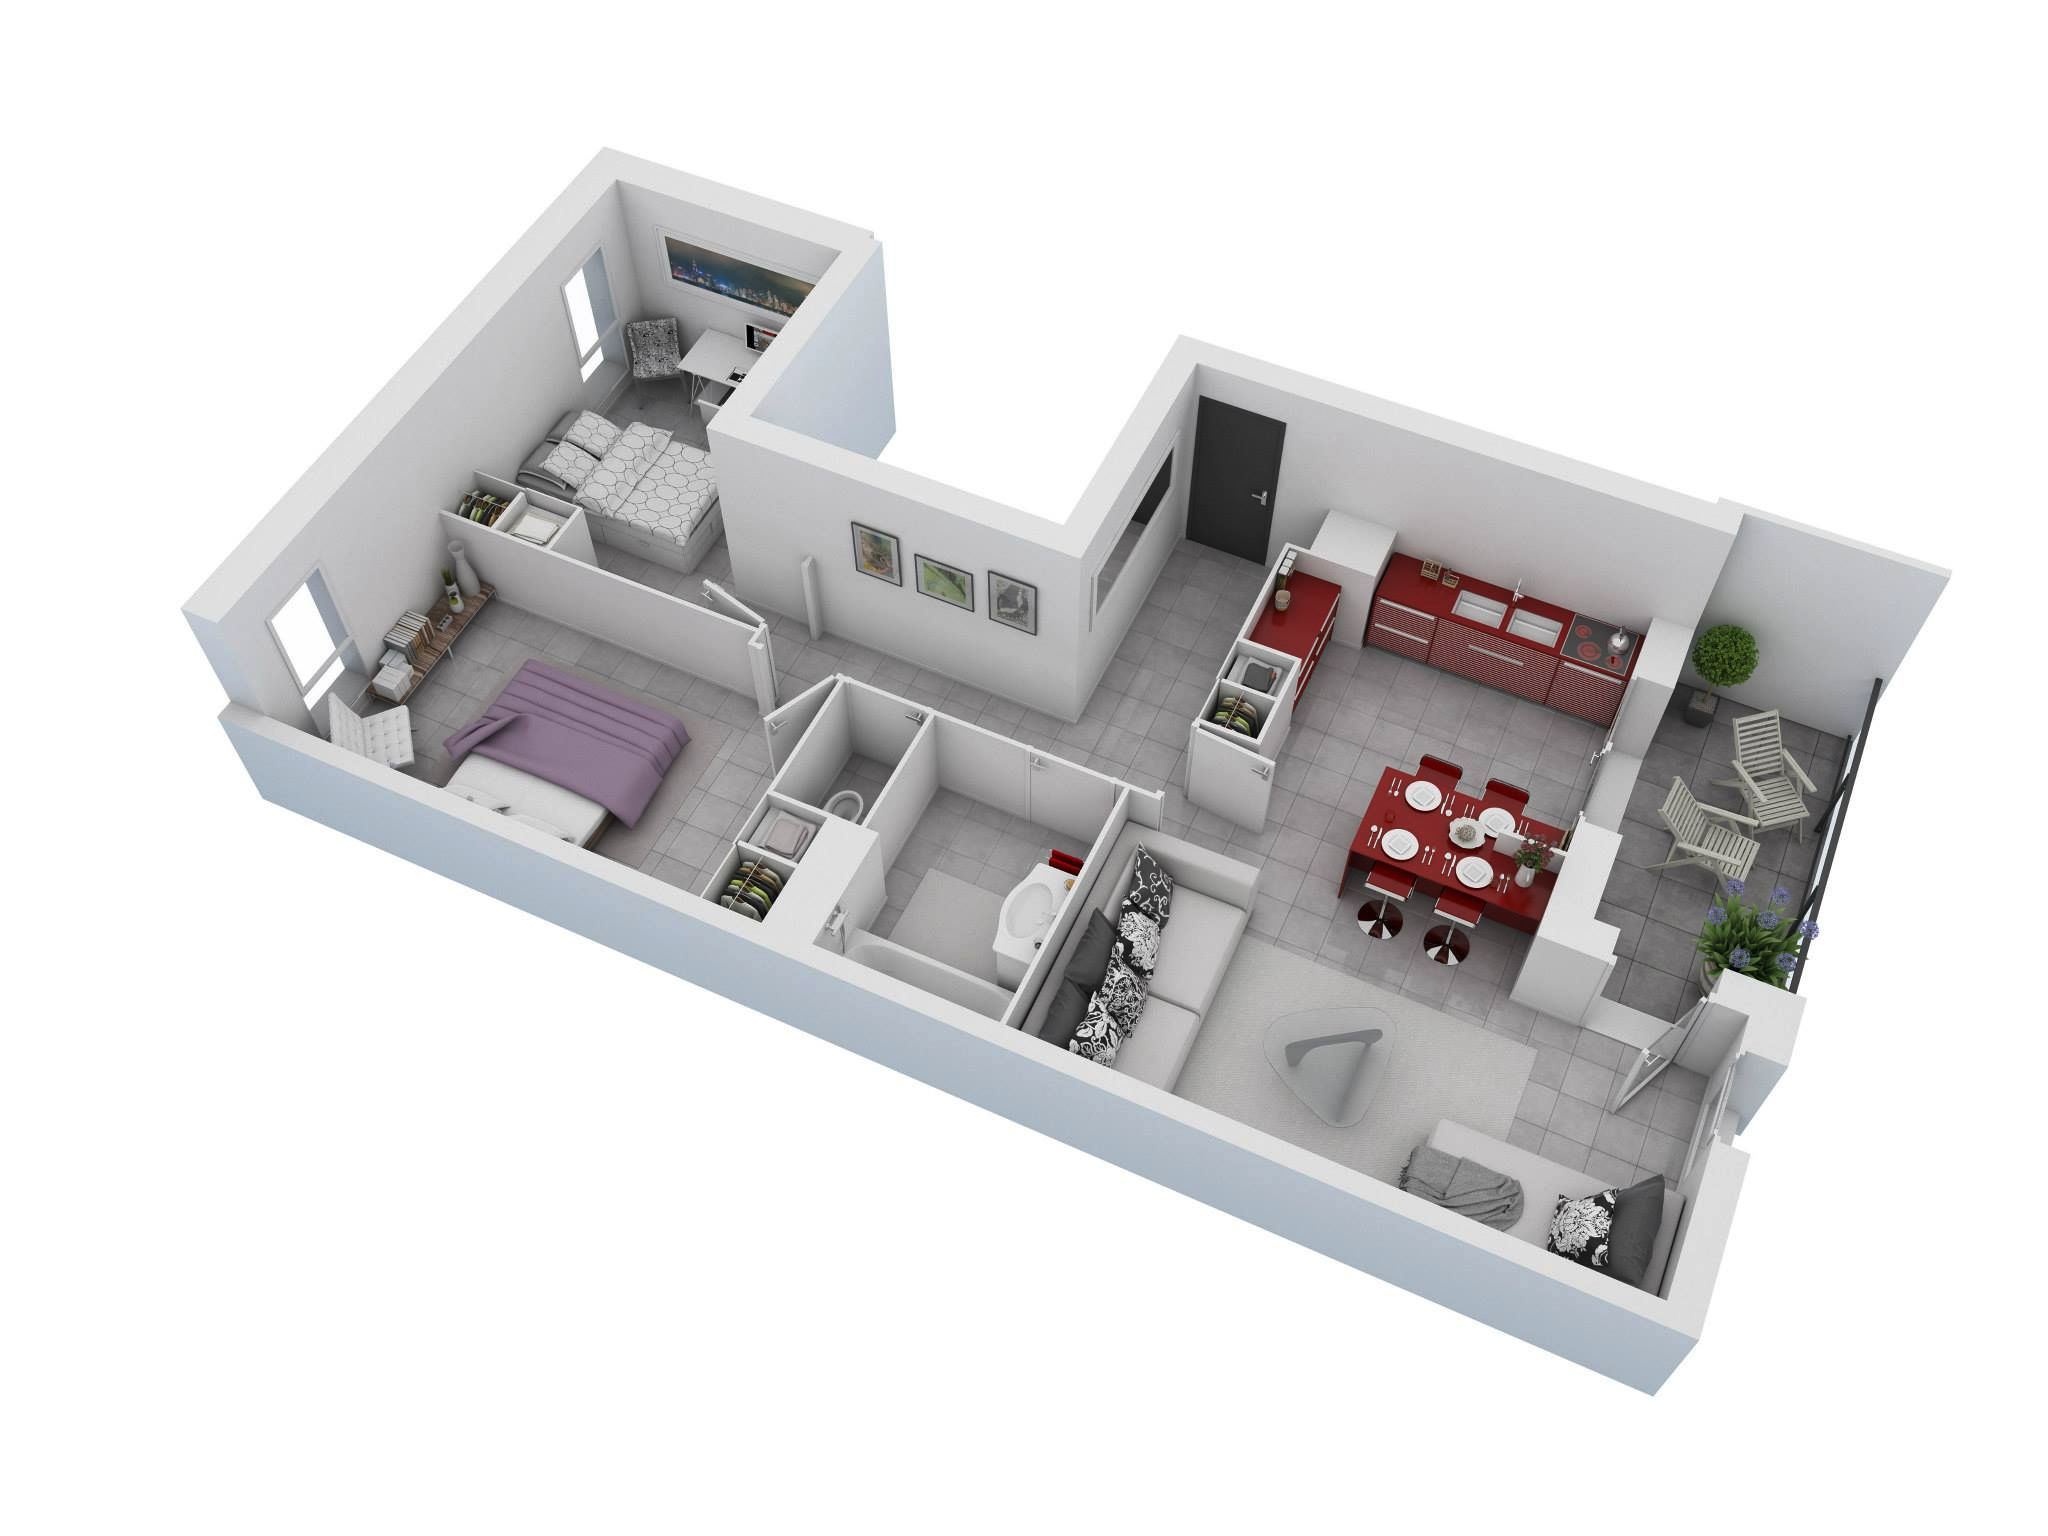 25 more 2 bedroom 3d floor plans Small 2 bedroom apartment floor plans